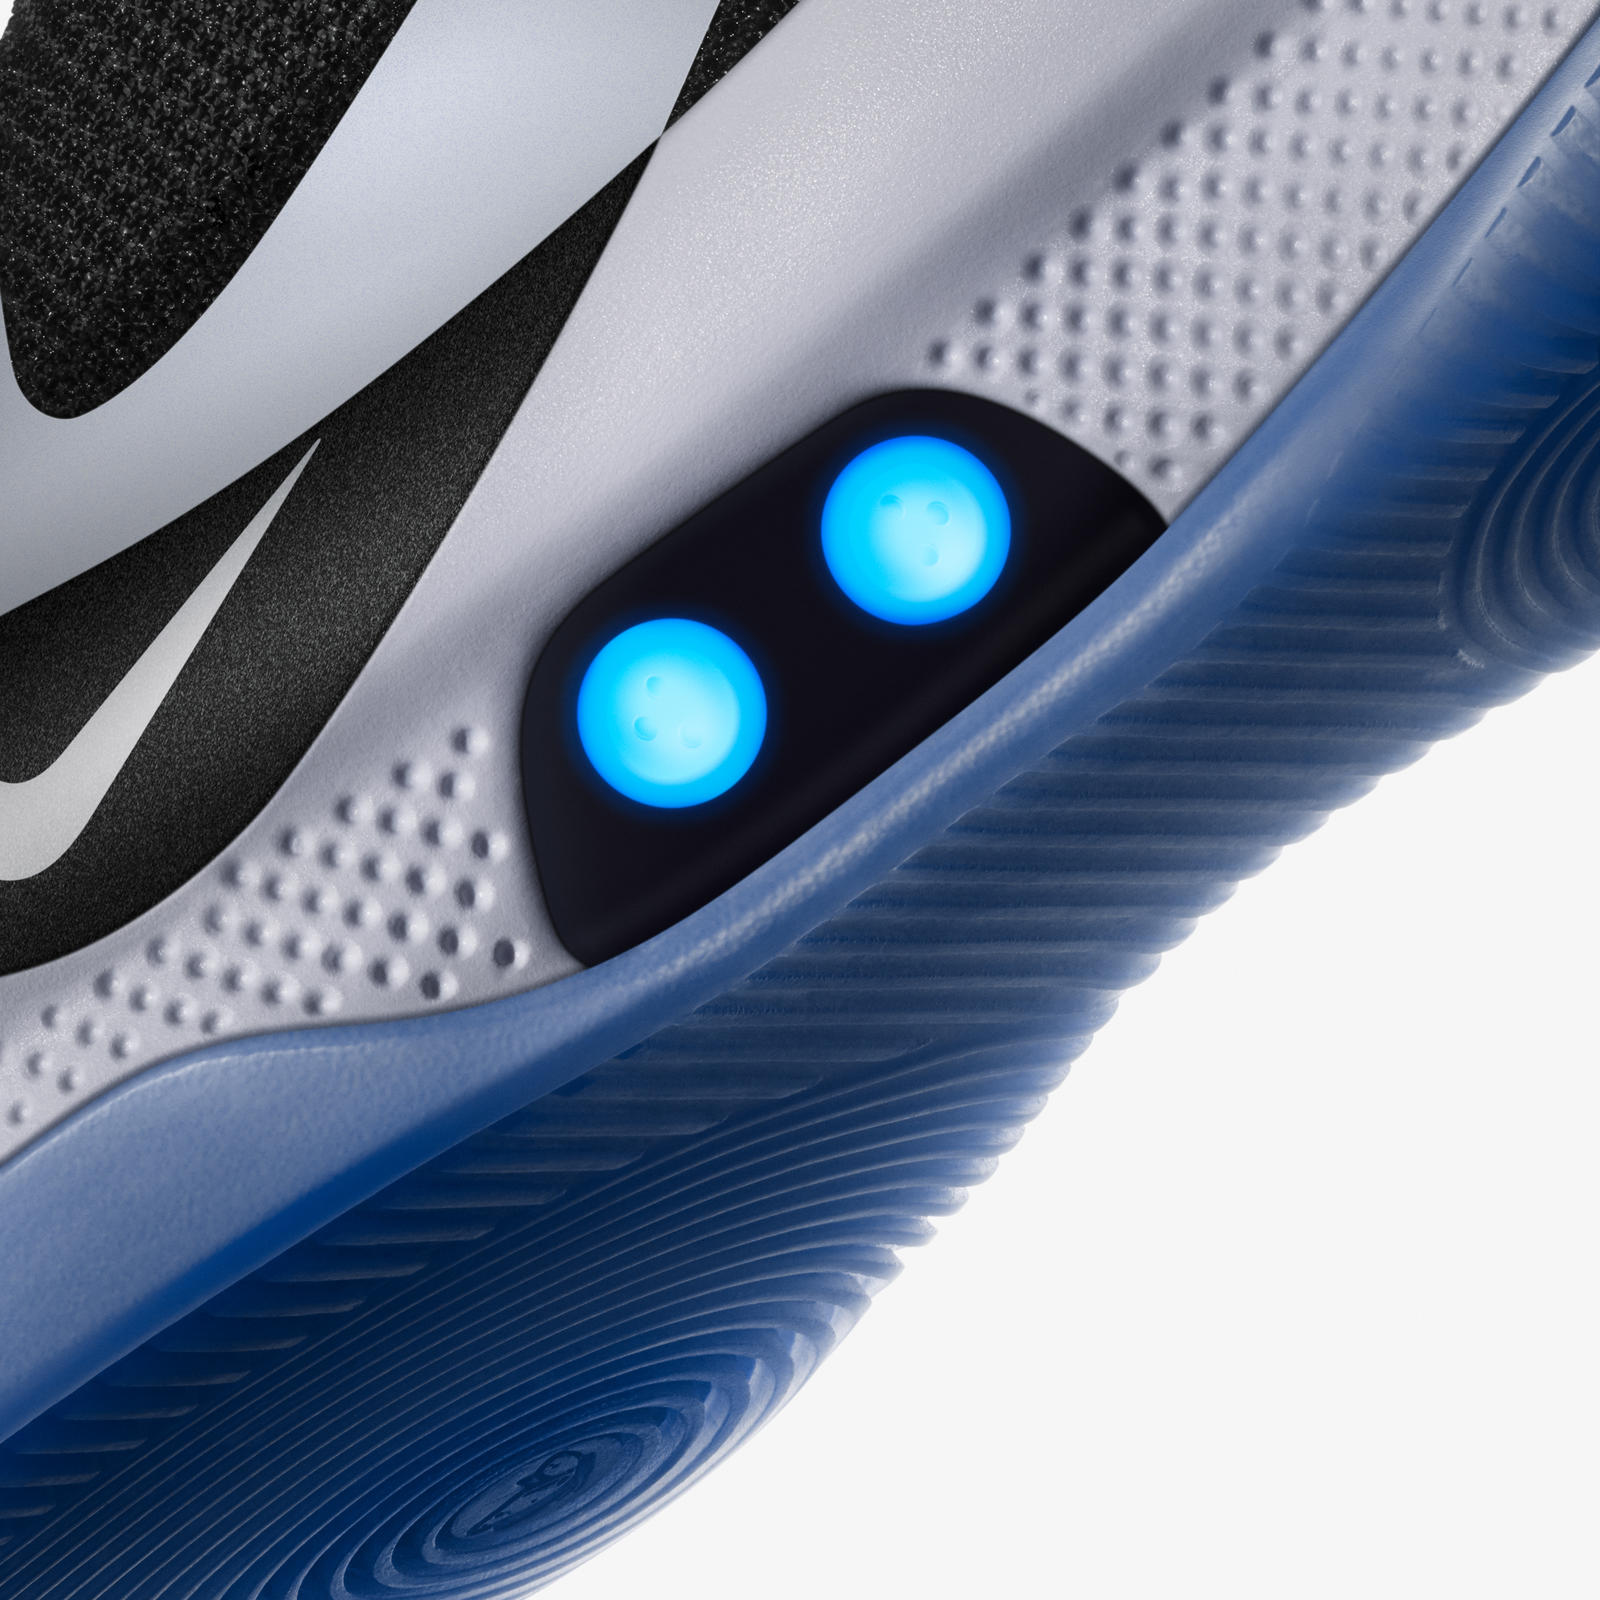 Sp19_BB_Nike_Adapt_20181218_NIKE0538_Detail2_square_1600